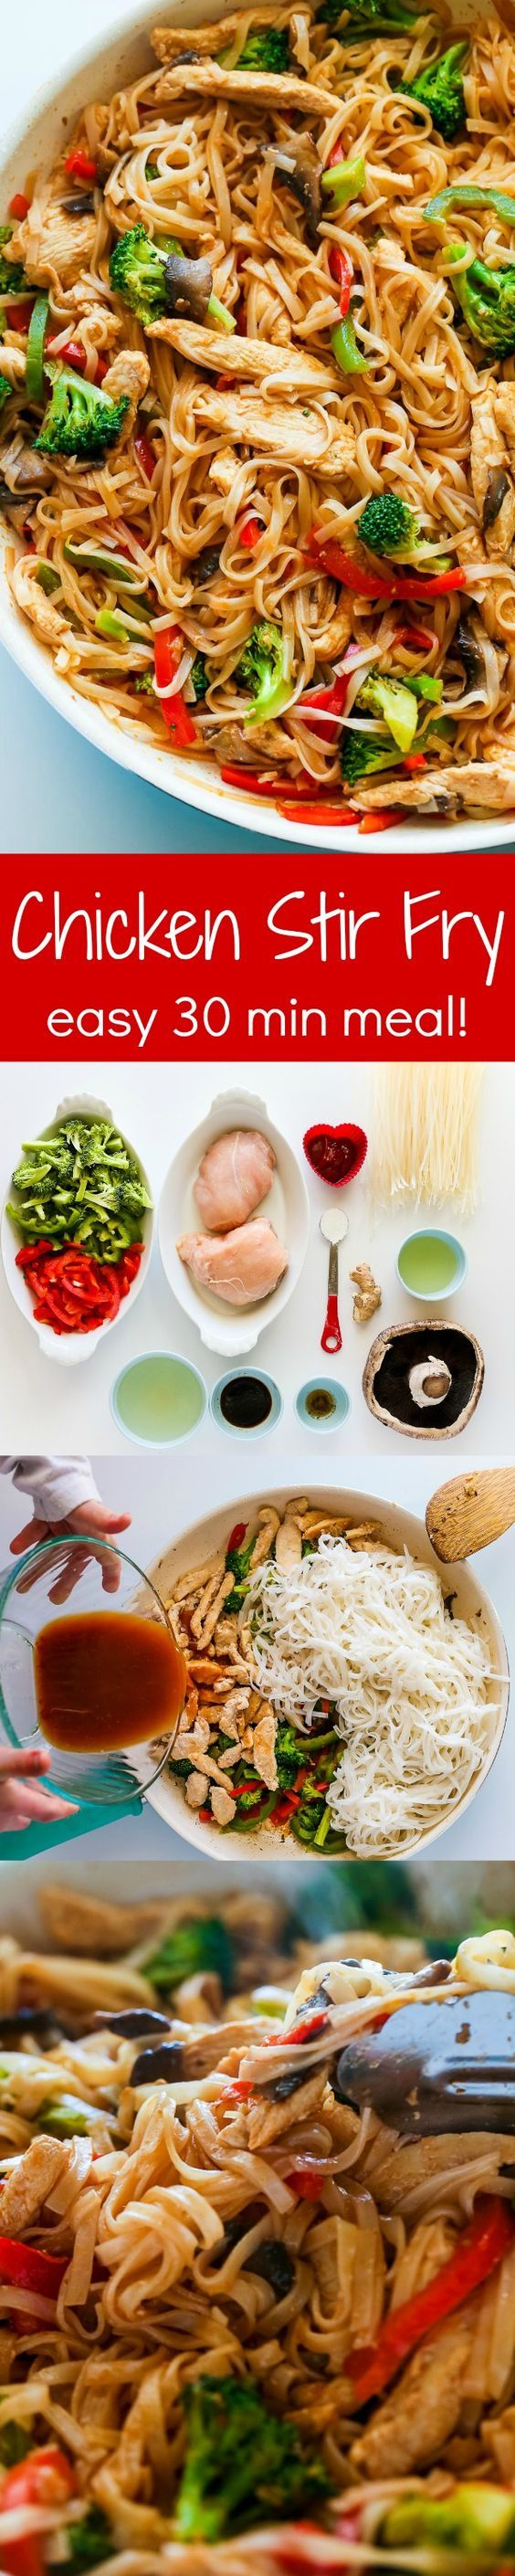 Chicken Stir Fry with Rice Noodles is an easy and delicious weeknight meal loaded with healthy ingredients. A one-pan, 30 minute chicken stir fry recipe. | natashaskitchen.com